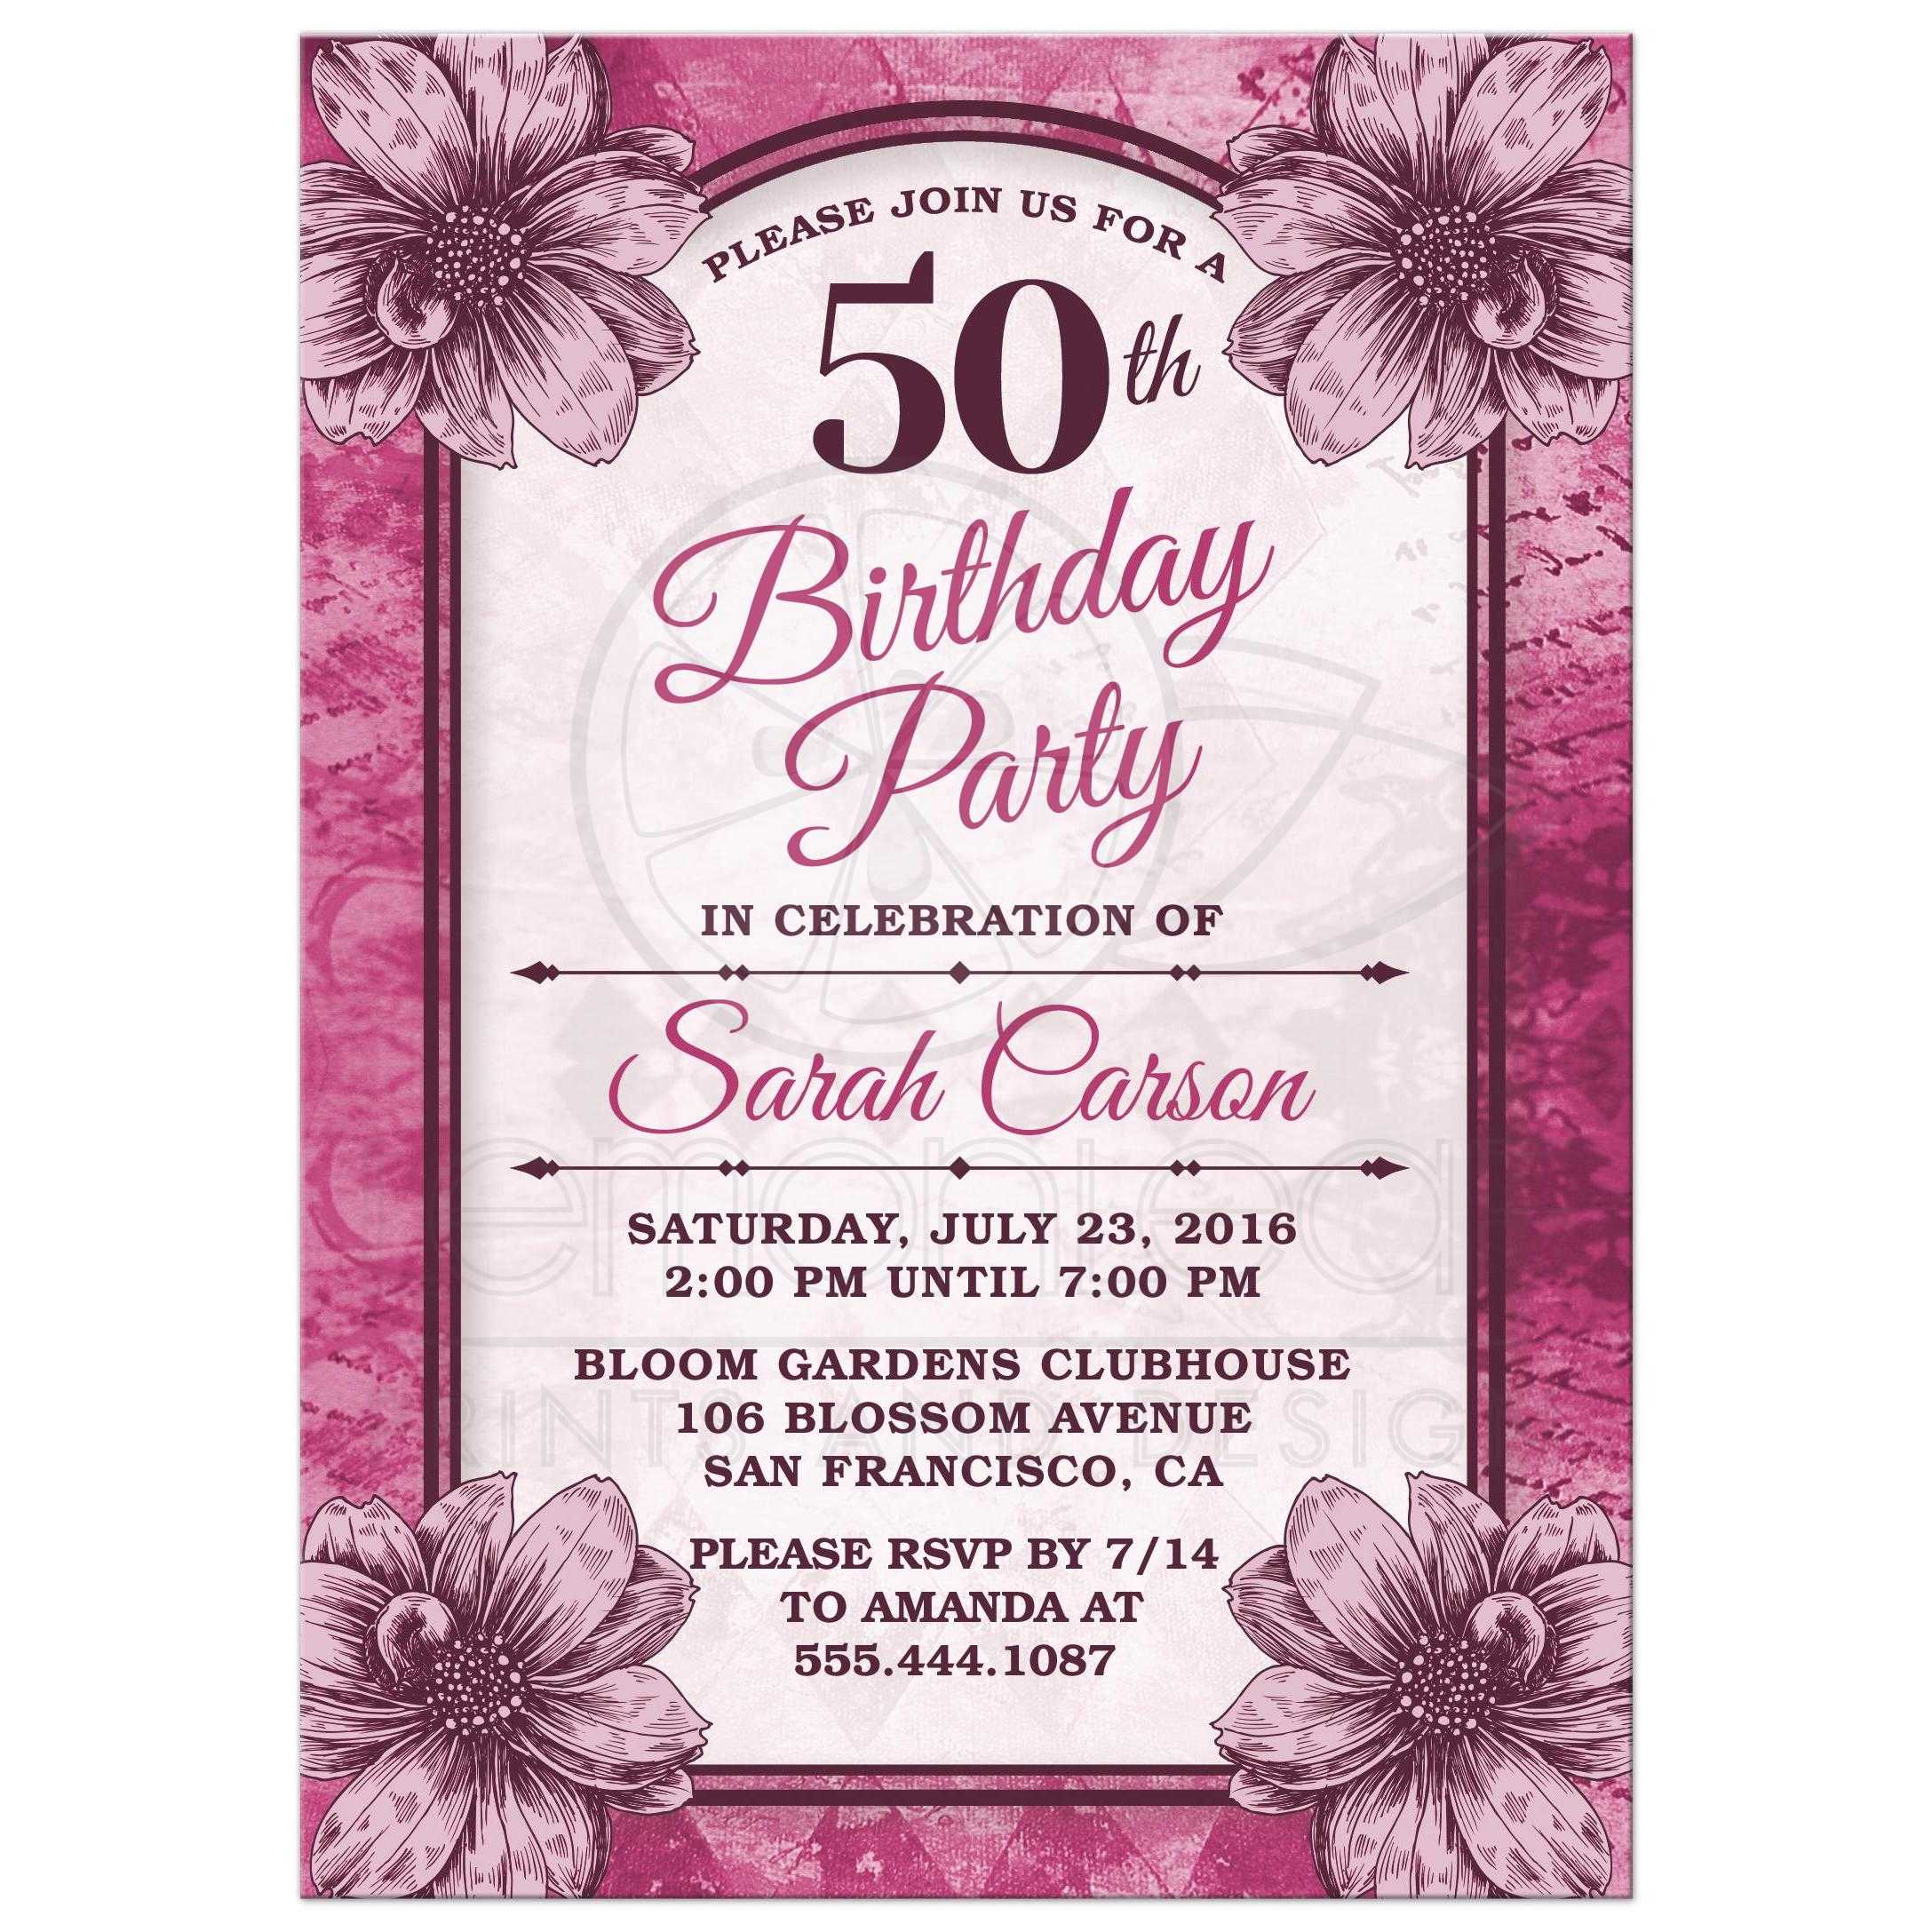 50th birthday party invitations - Gidiye.redformapolitica.co